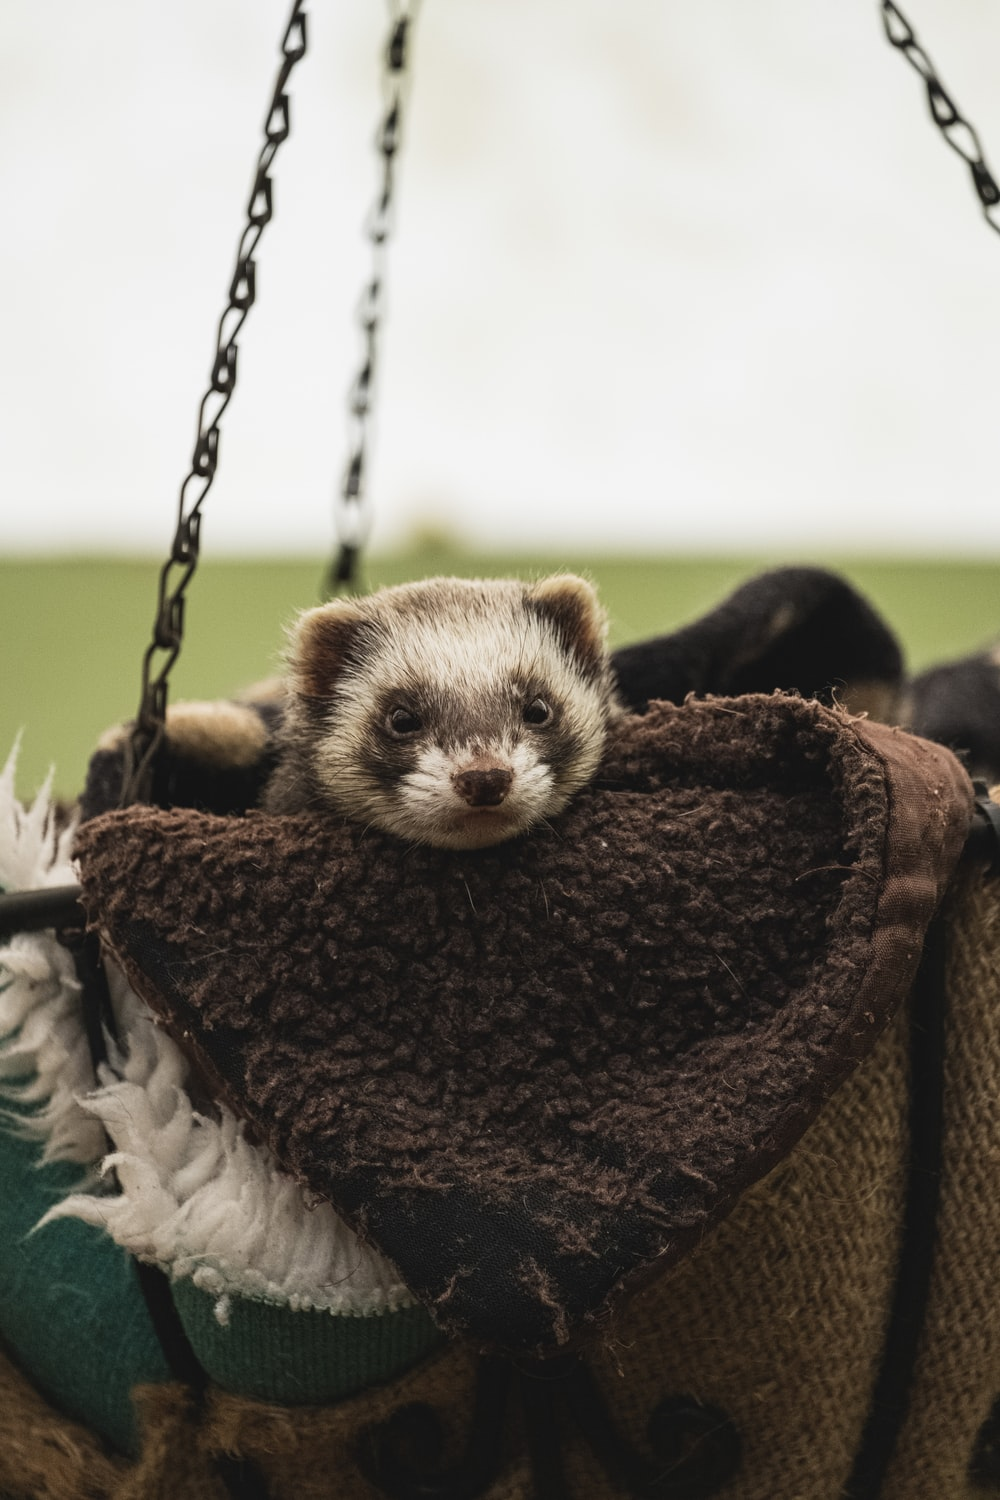 white and black ferret in the bag